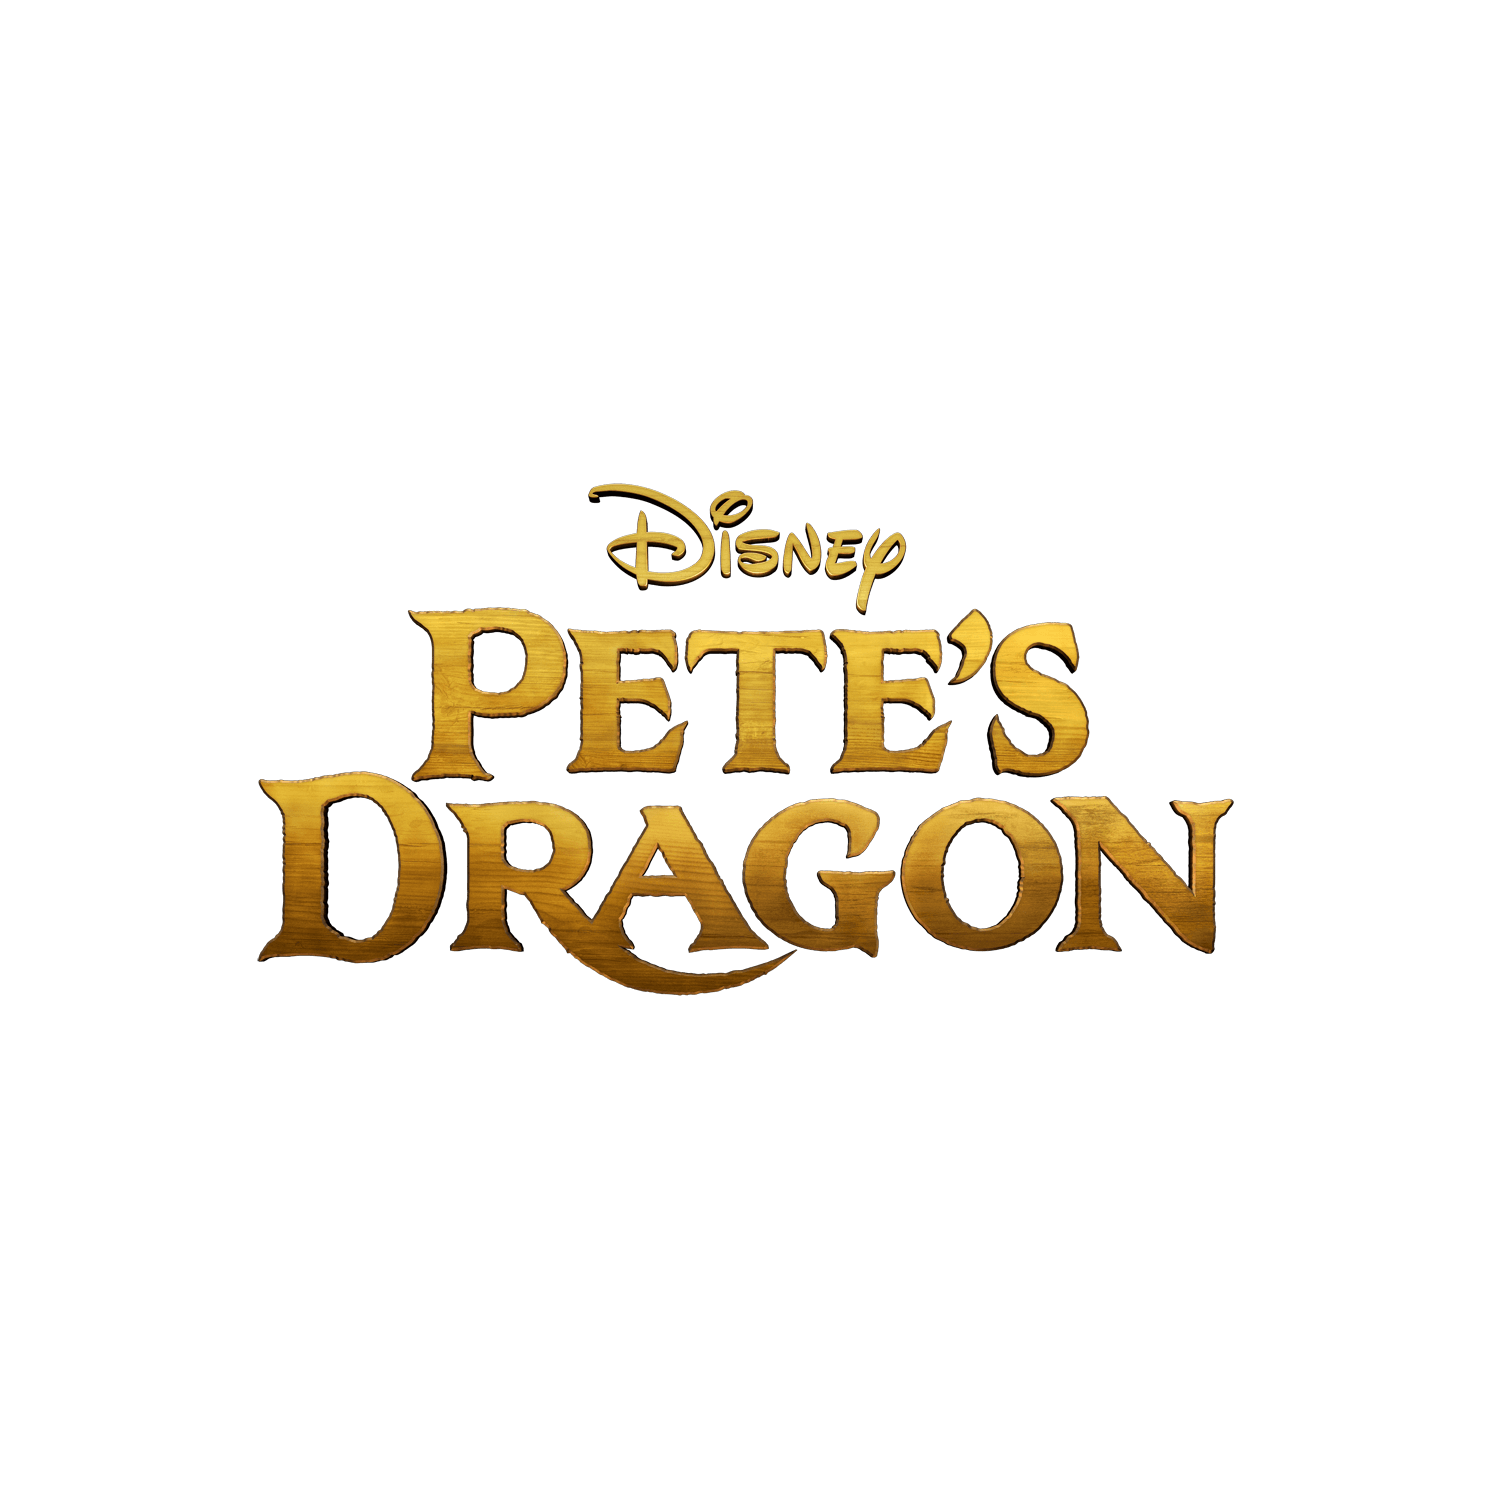 Event Sponsor: Disney Pete's Dragon